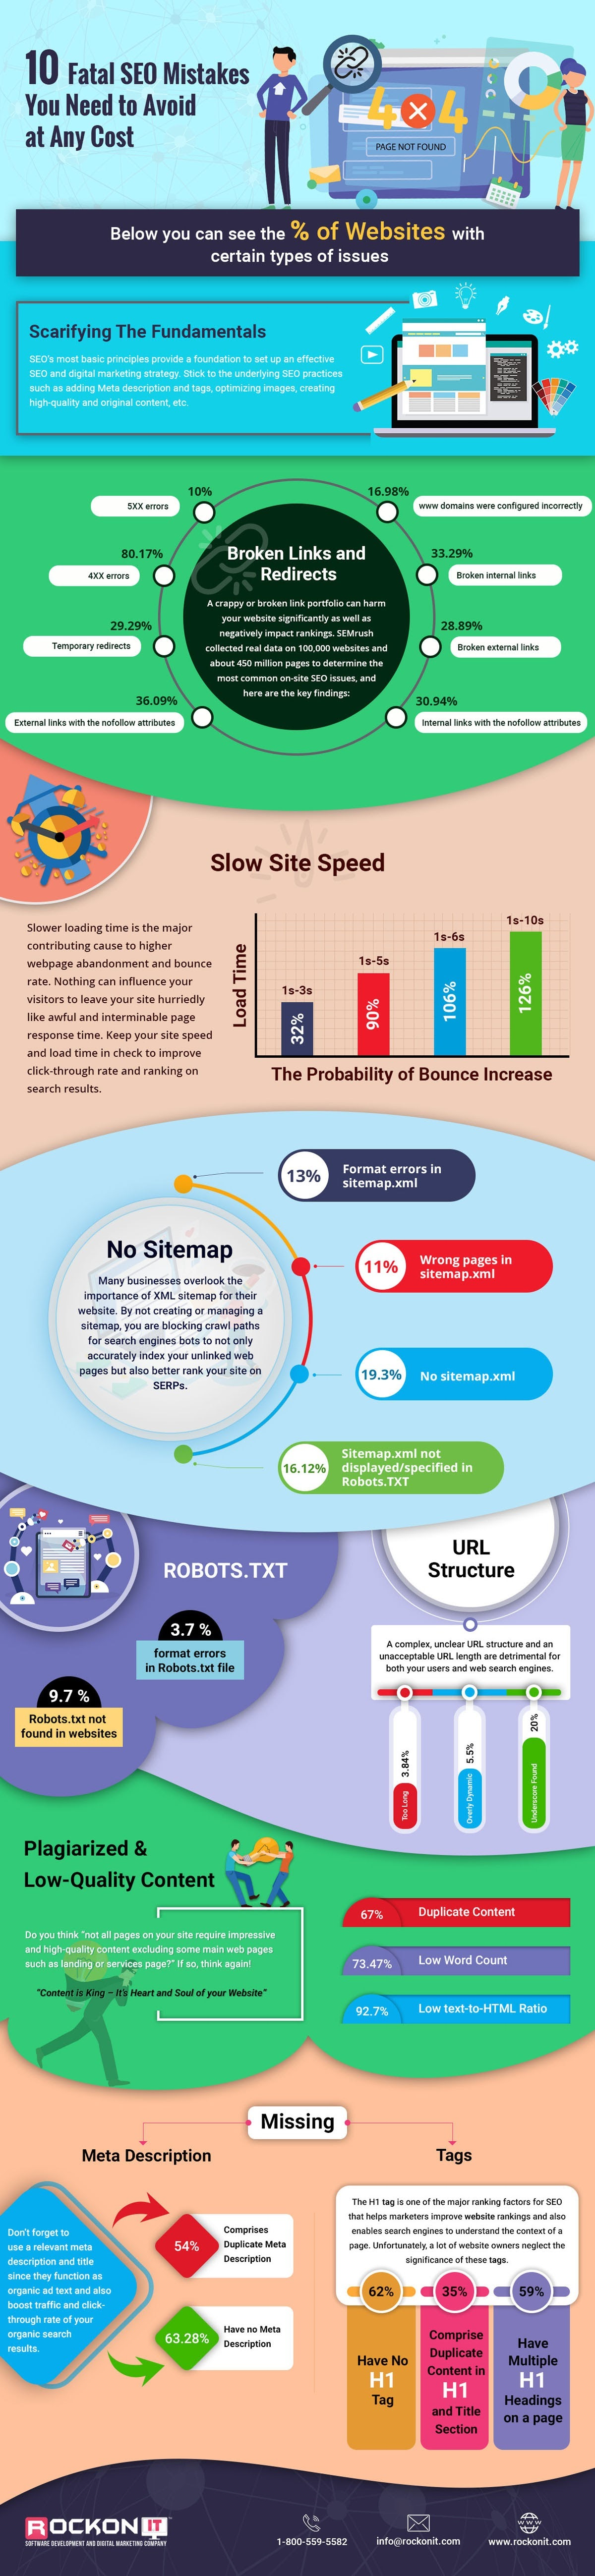 10 Fatal SEO Mistakes You Need to Avoid at Any Cost #infographic